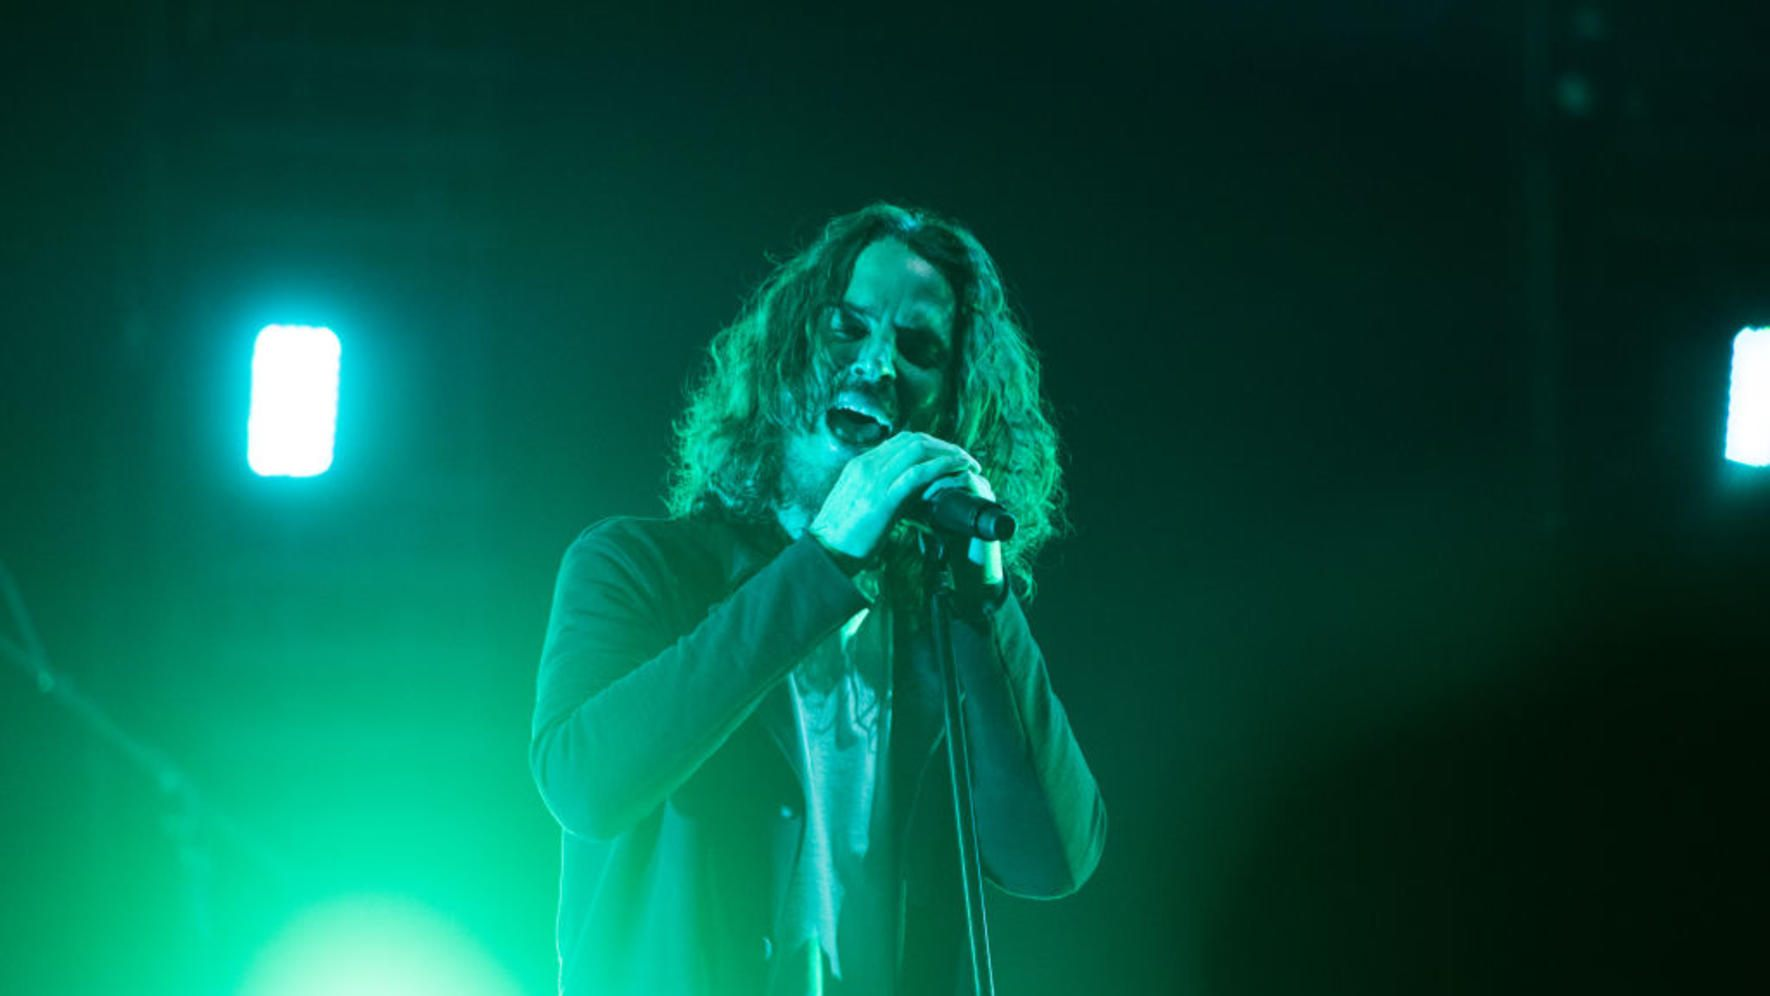 Chris Cornell Soundgarden Dead James Bond Tour